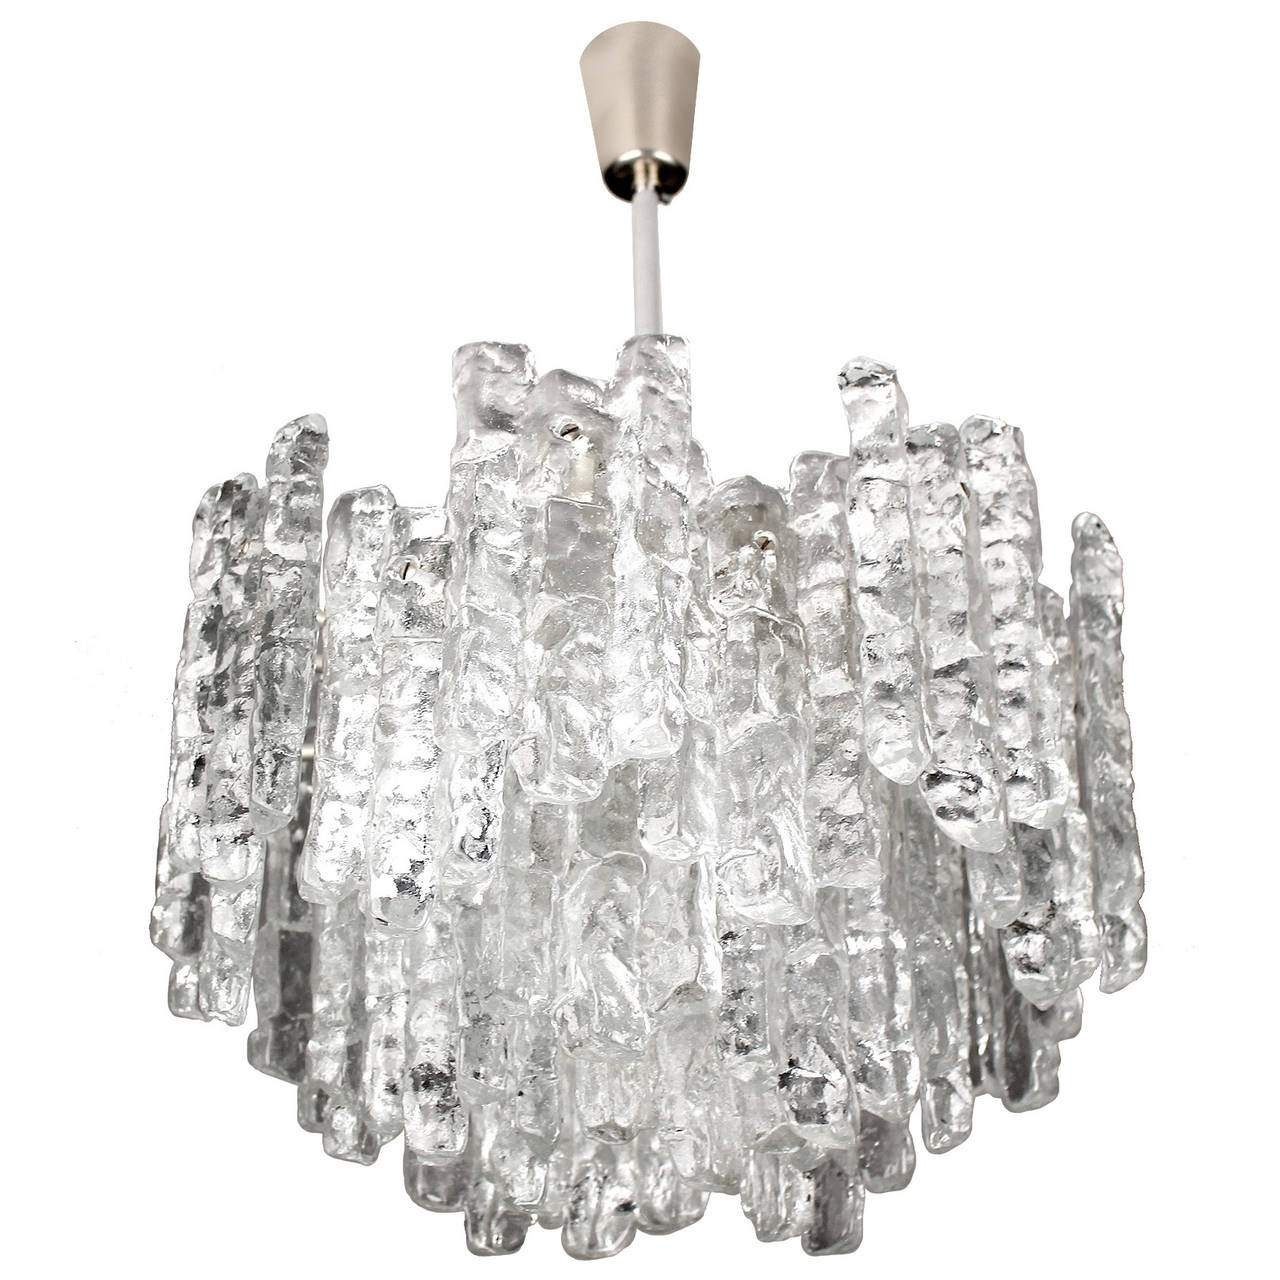 Large Kalmar Murano Glass Chandelier 1960s Modernist Design Throughout Large Glass Chandelier (Image 9 of 15)